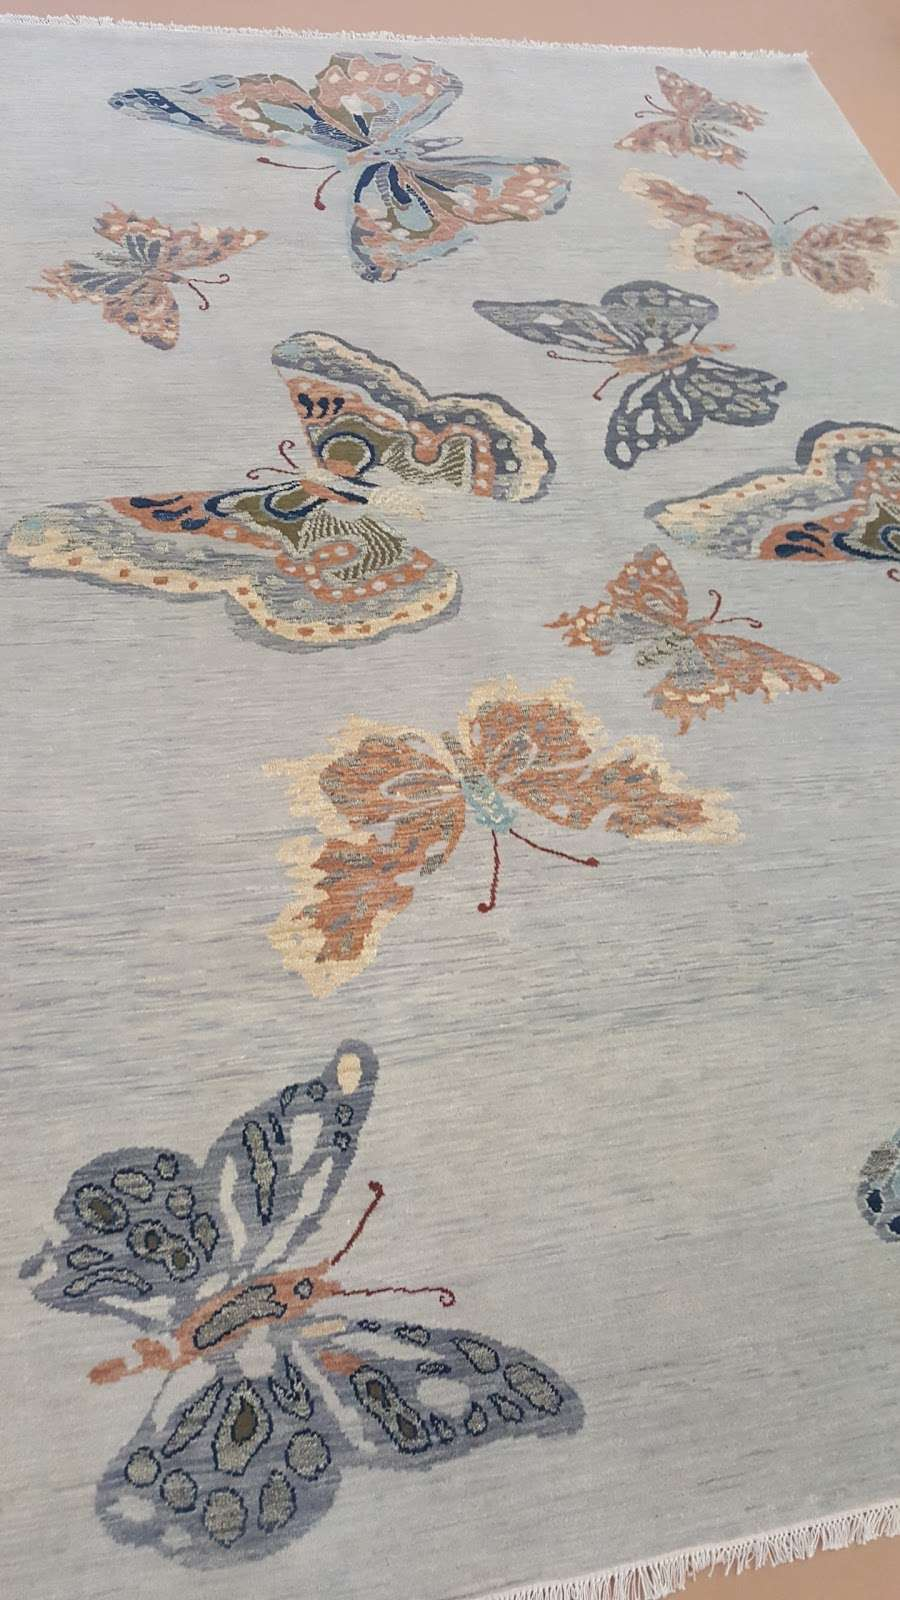 Sns Oriental Rugs - home goods store    Photo 2 of 2   Address: 455 Barell Ave, Carlstadt, NJ 07072, USA   Phone: (201) 355-8737